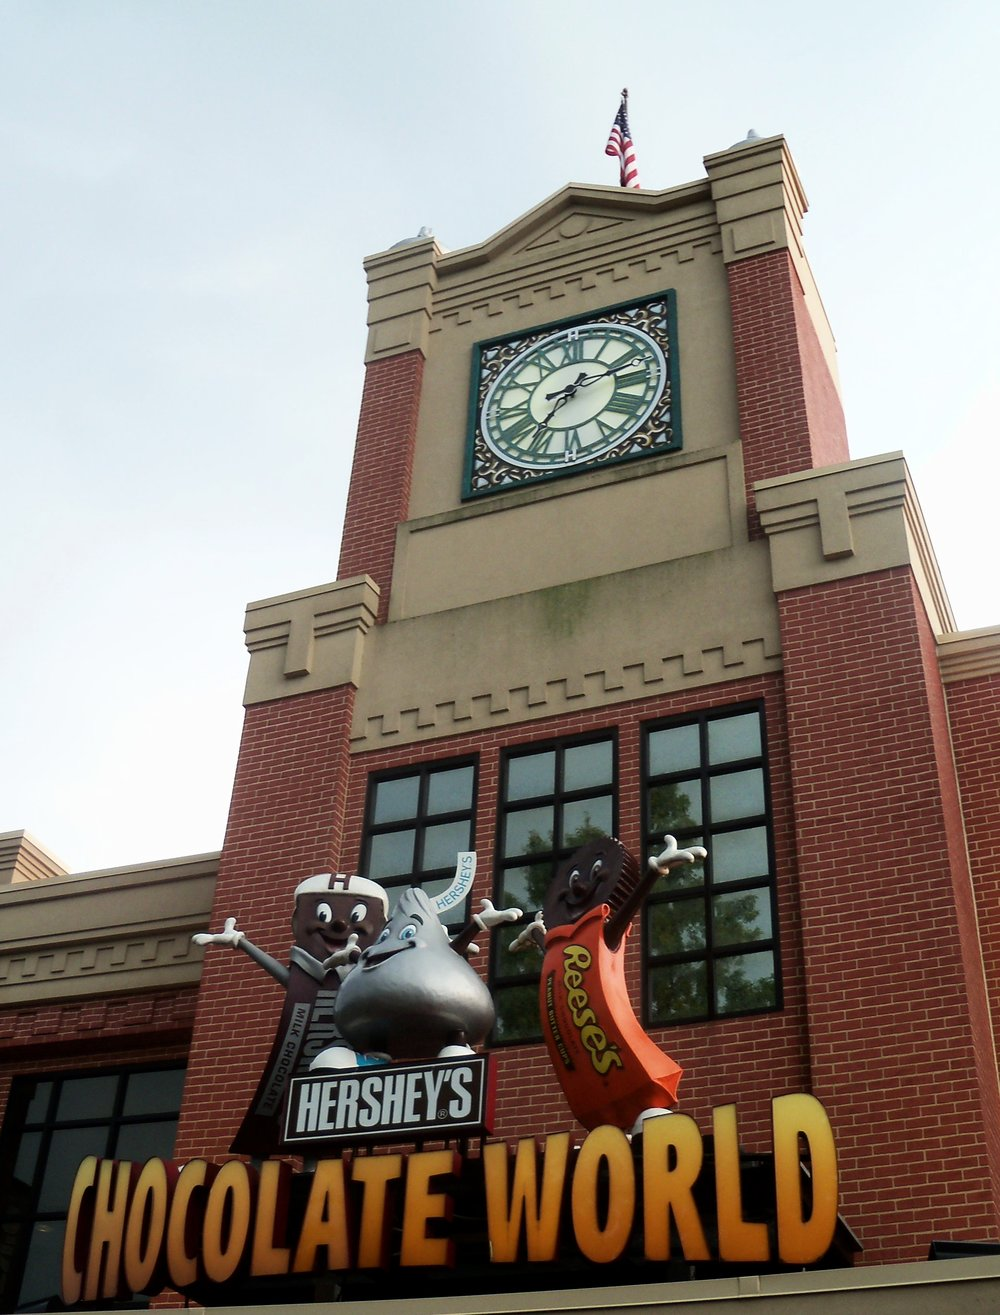 Above the entrance to Hershey's Chocolate World